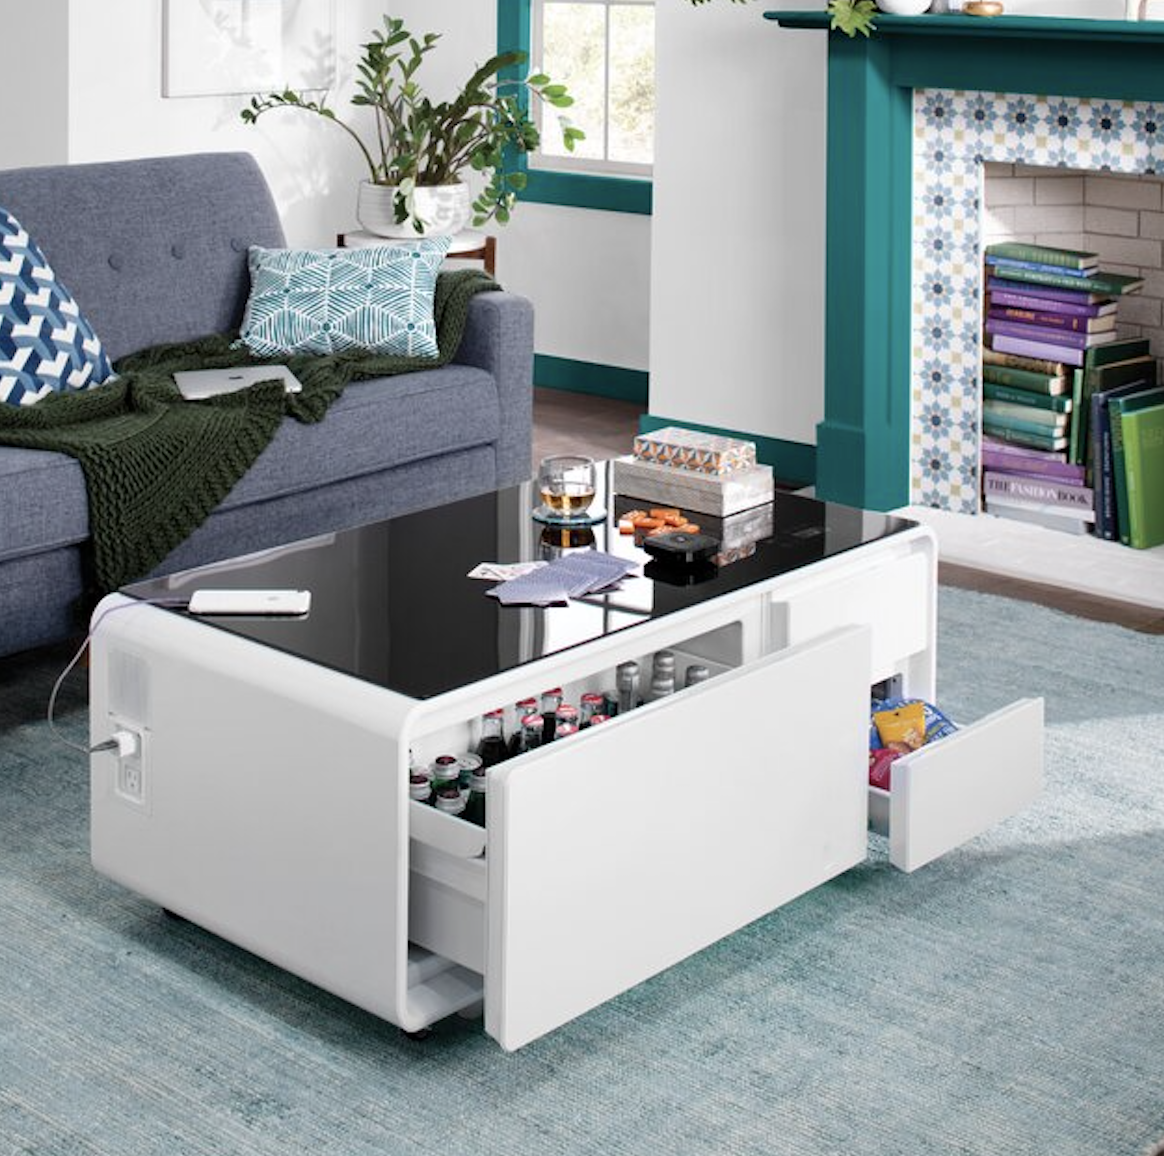 Tiktok Is Obsessed With This Coffee Table With A Hidden Fridge And It S On Sale Right Now Furniture Coffee Table With Storage Coffee Table [ 1156 x 1164 Pixel ]